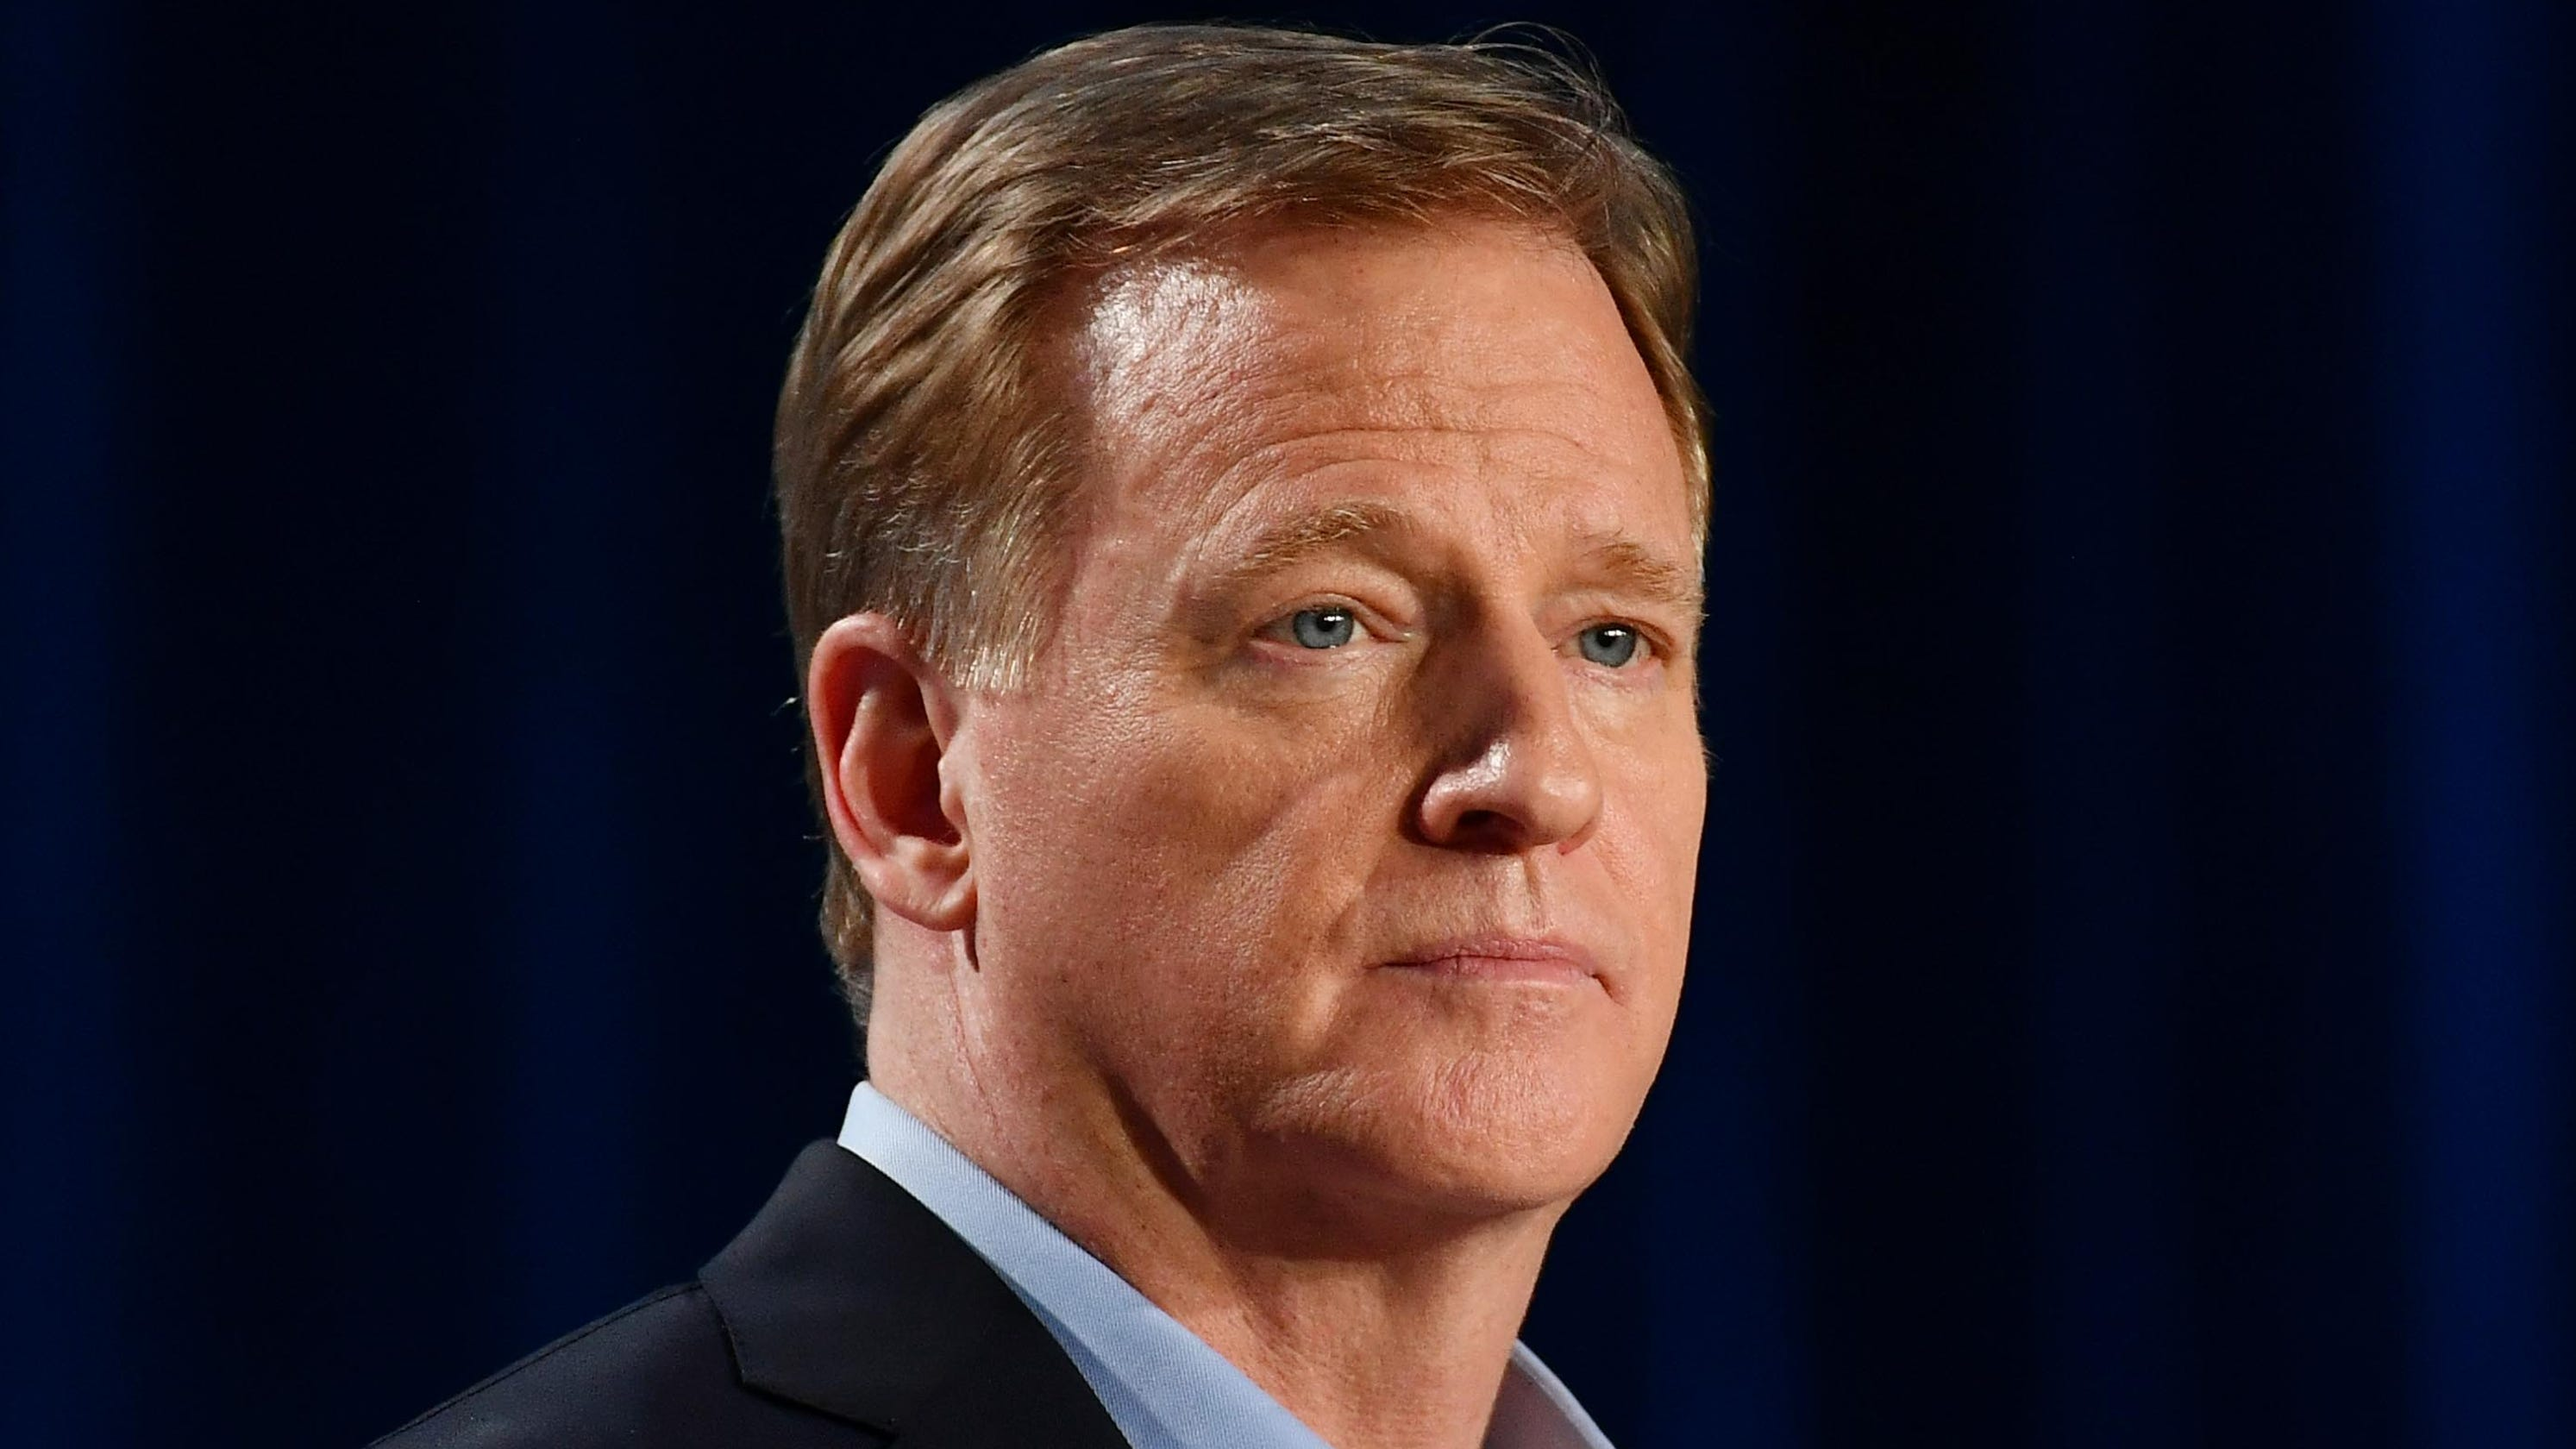 Does Roger Goodell have what it takes to lead NFL on race issues?